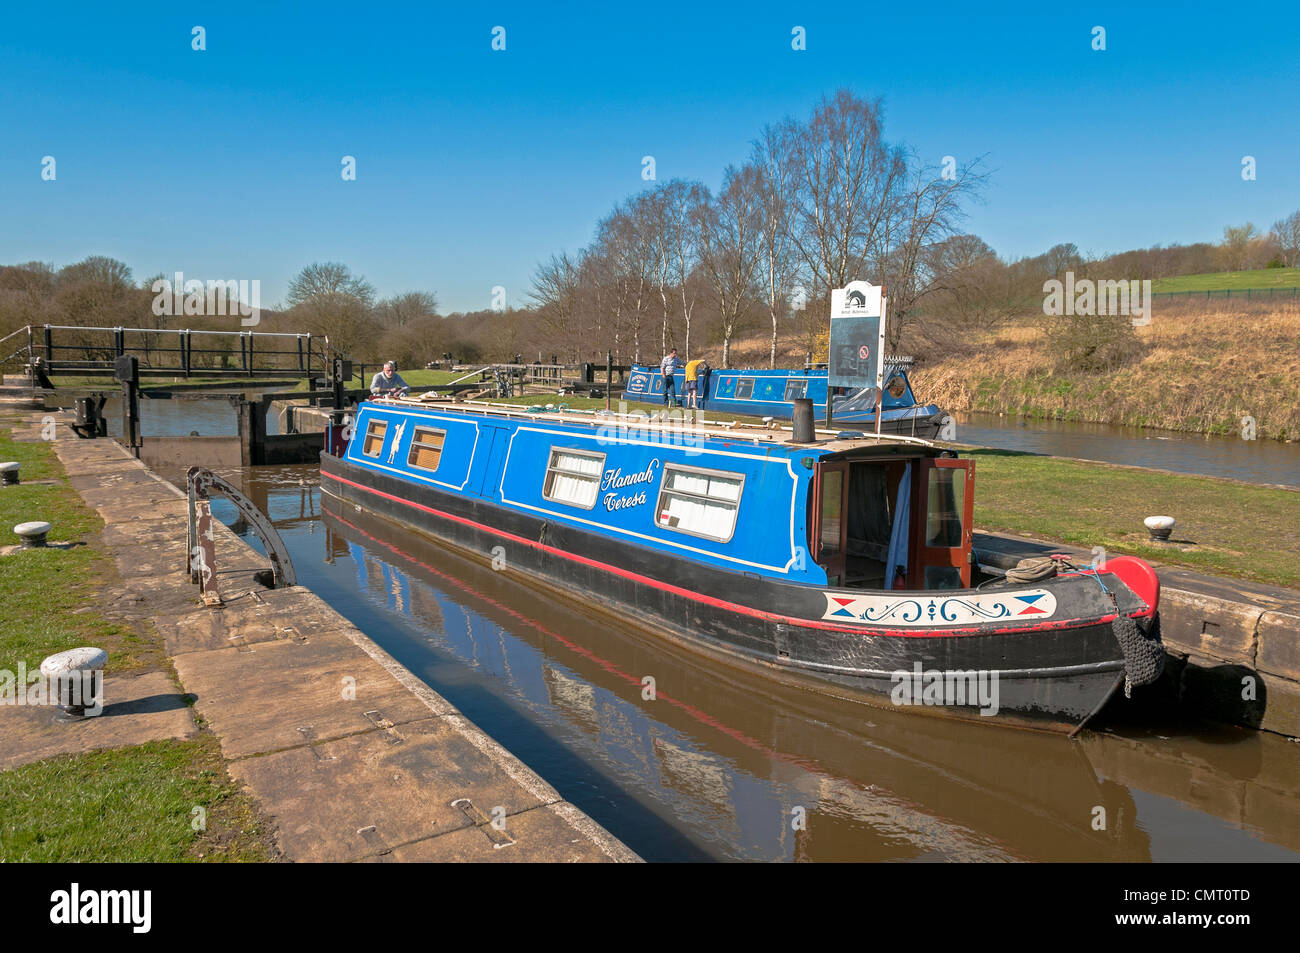 Canal narrowboat at Dean lock at Gathurst on the Leeds Liverpool canal. - Stock Image